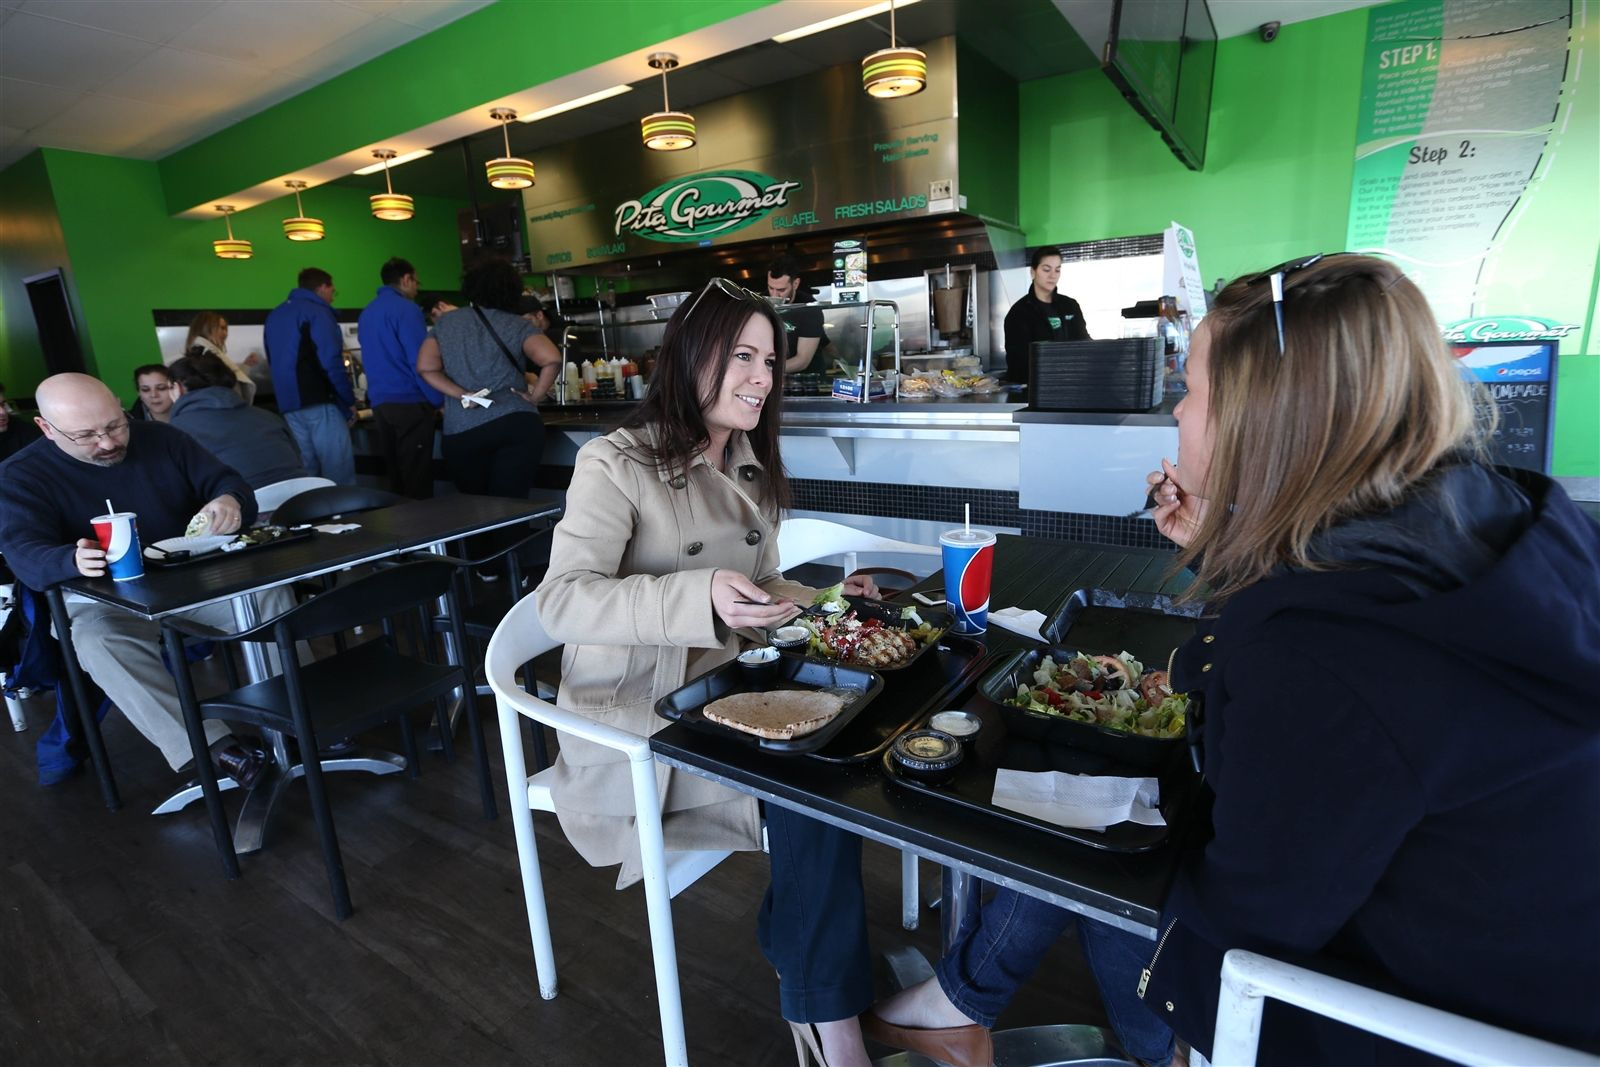 Pita Gourmet  at 6733 Transit Rd. in Lancaster offers authentic Greek and Mediterranean cuisine. Coworkers Cori Sannicola and Sarah Morein have lunch, Tuesday, March 24, 2015.